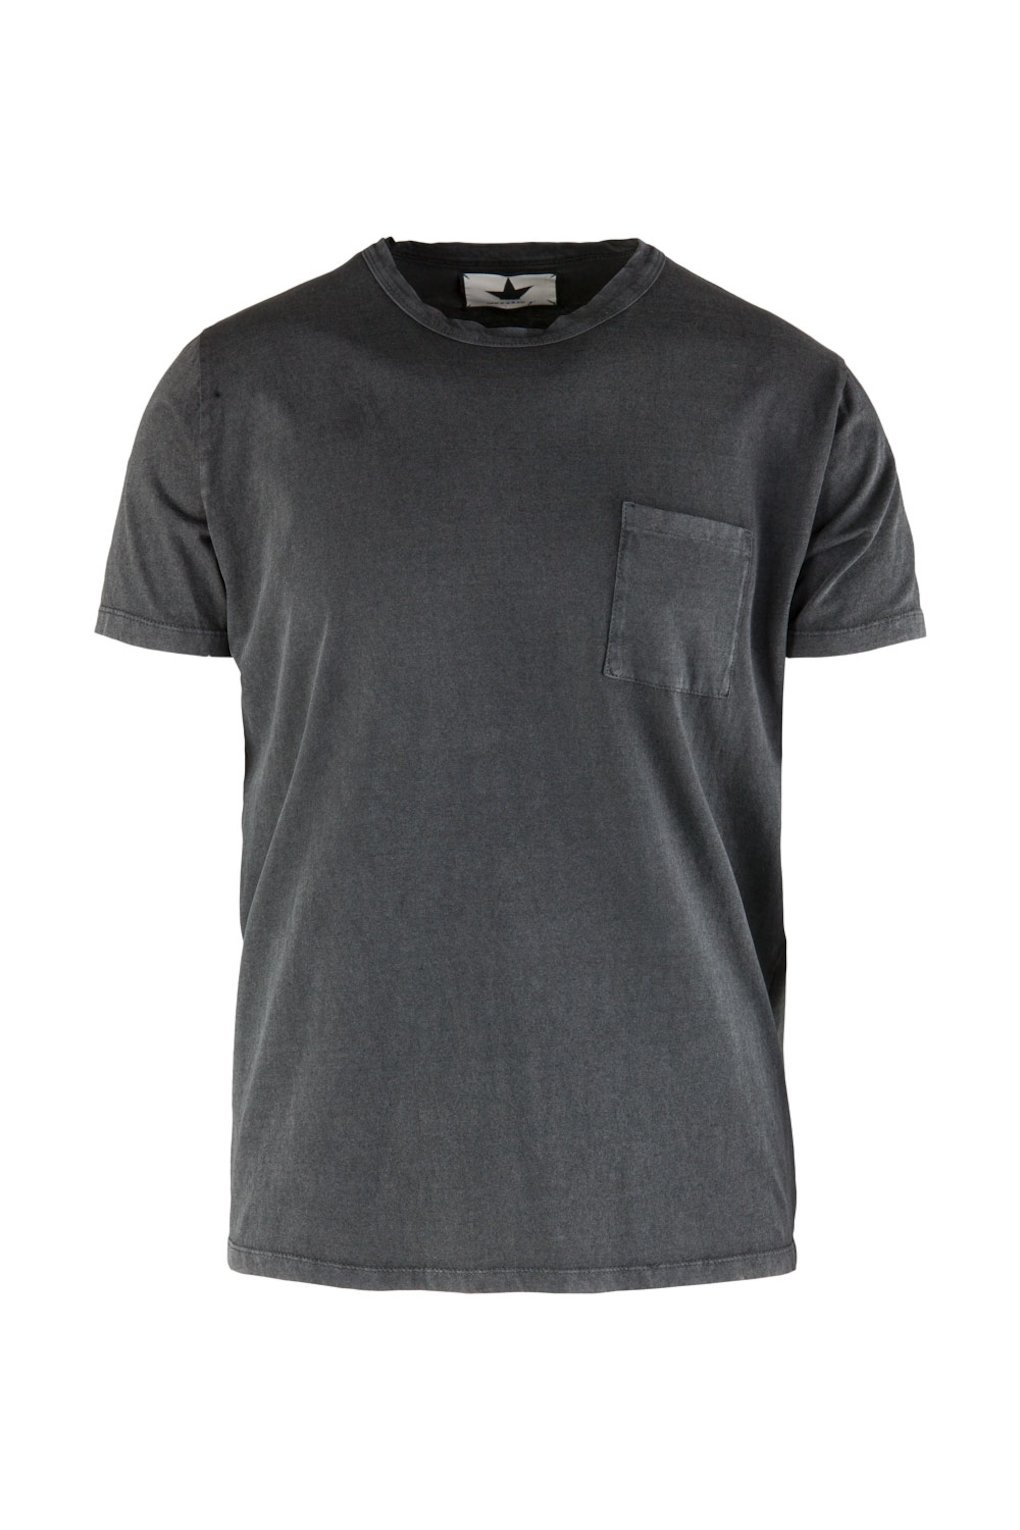 Stone Washed T-Shirt with Brest Pocket